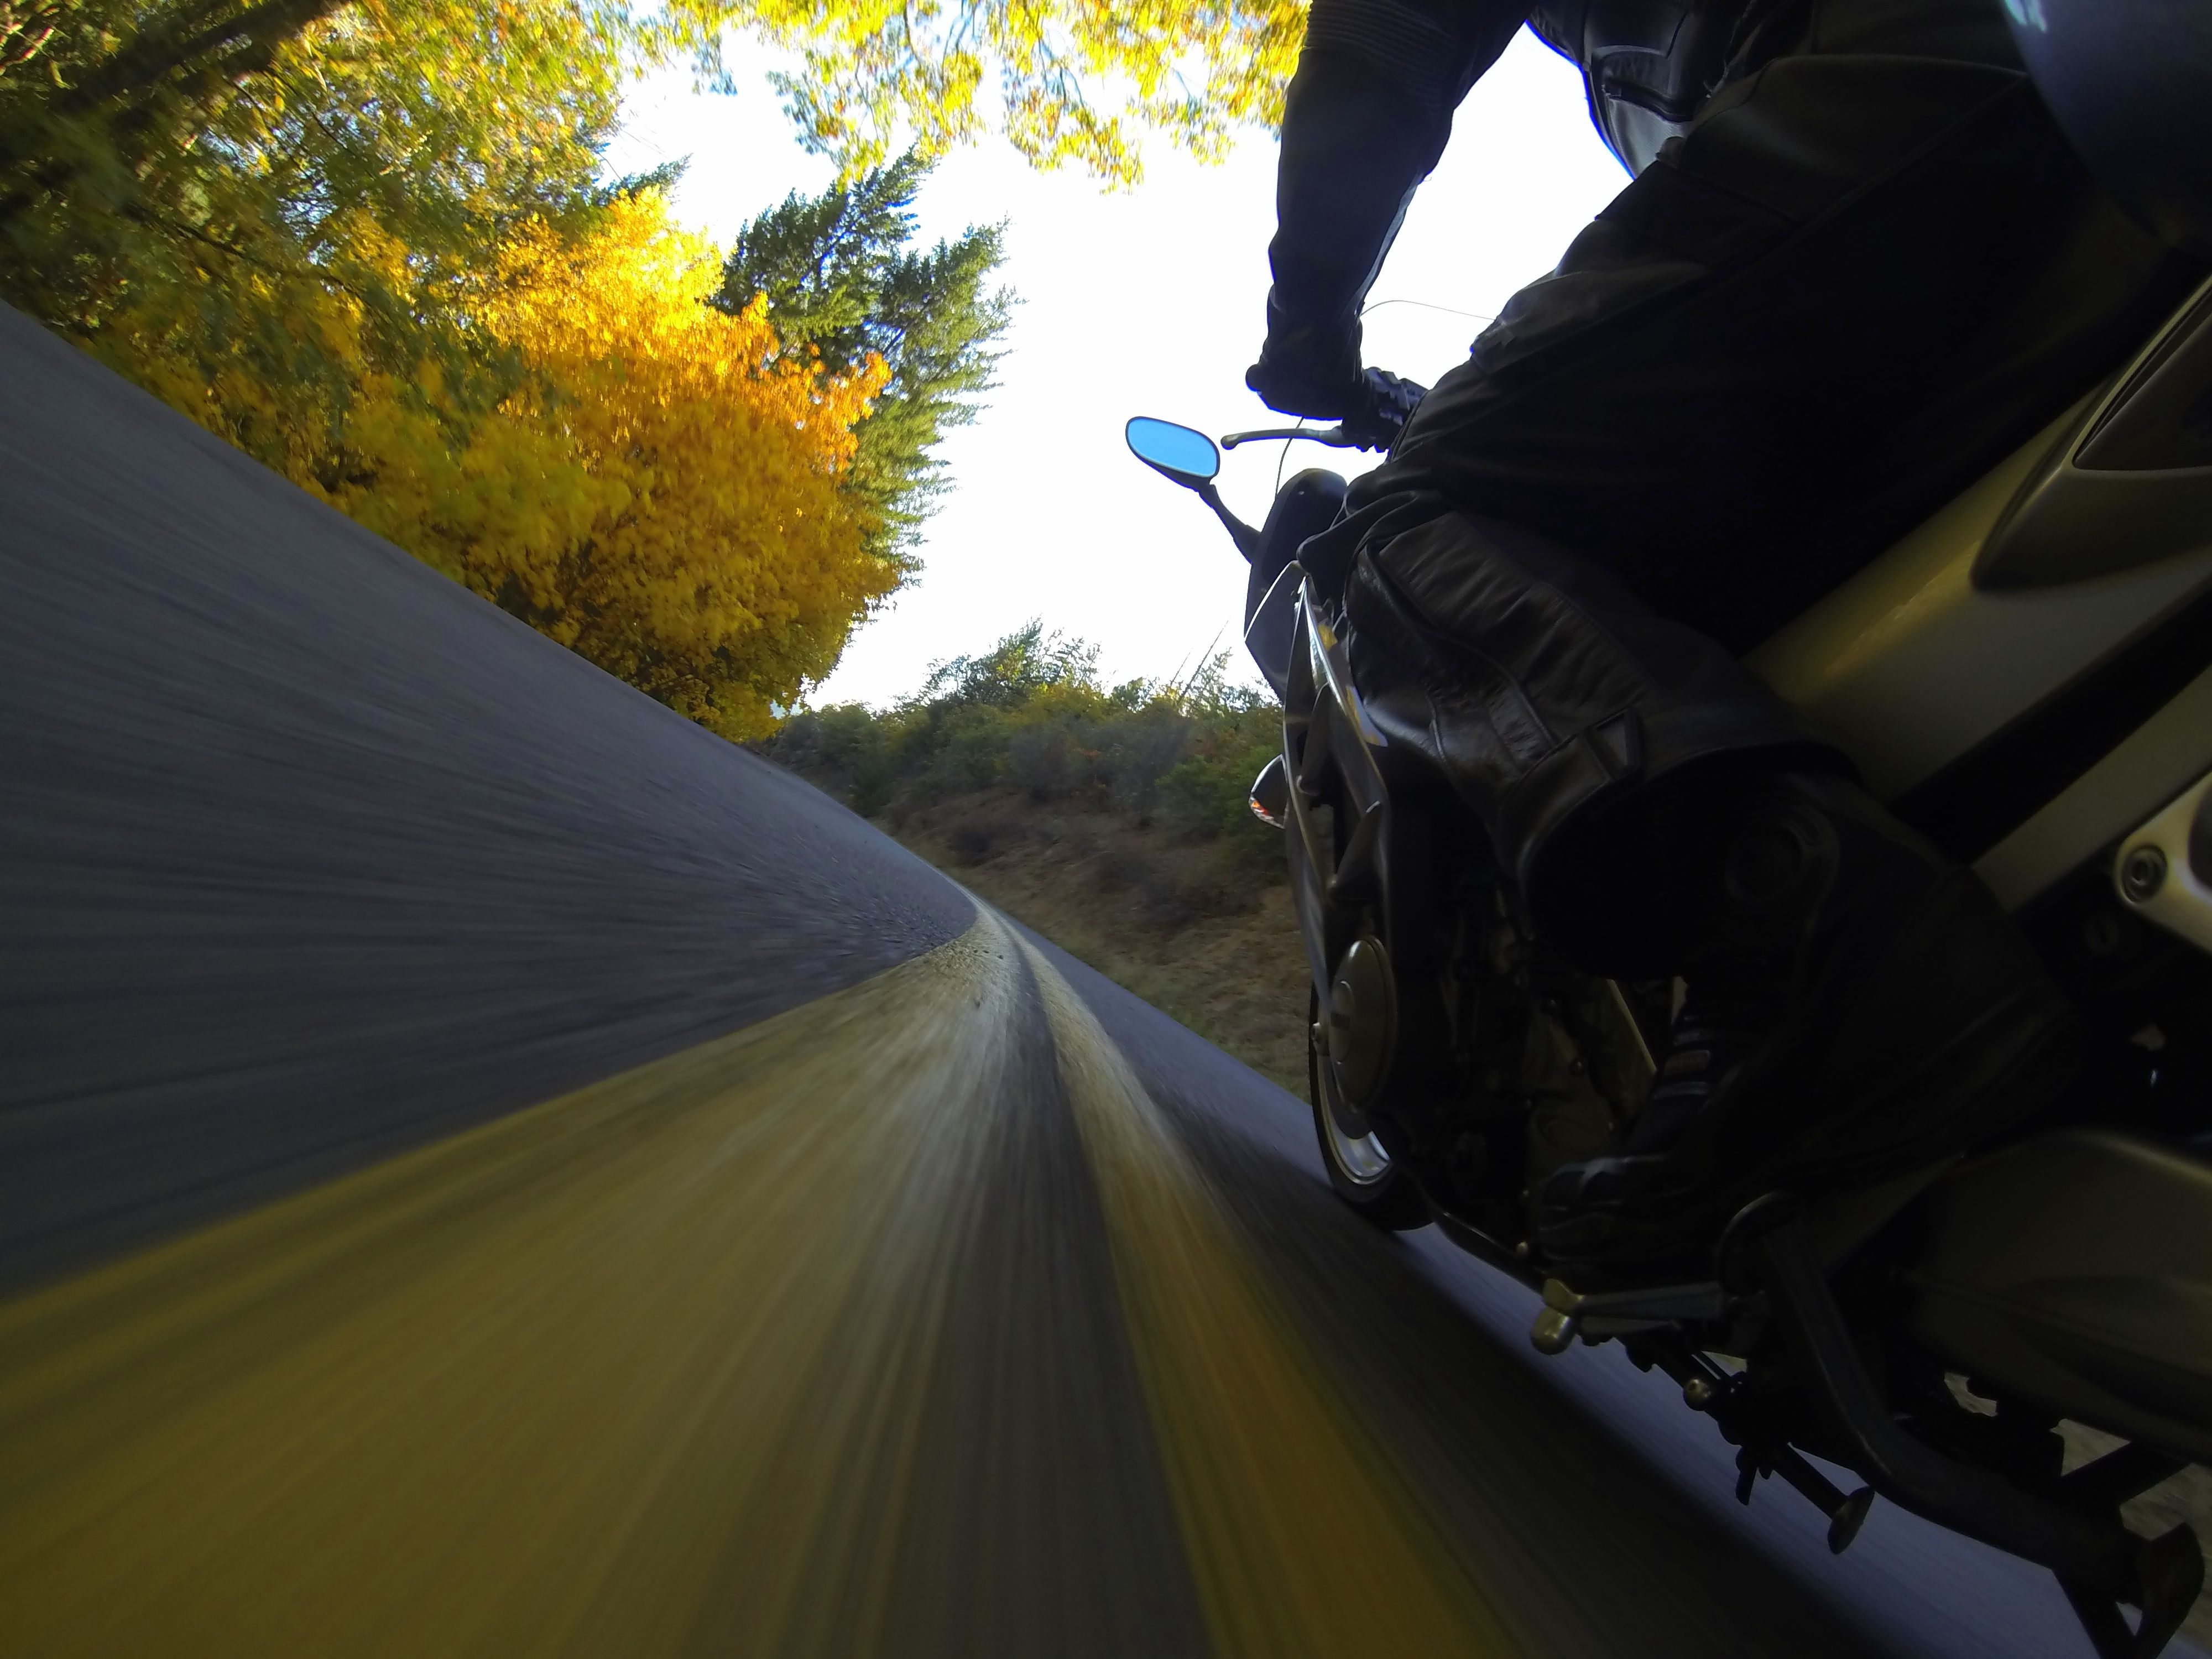 Photo by Jason Moore.  Shot with the GoPro Hero 3 Black.  Fall in southern Oregon onboard a 2004 Yamaha FJR 1300 ABS.